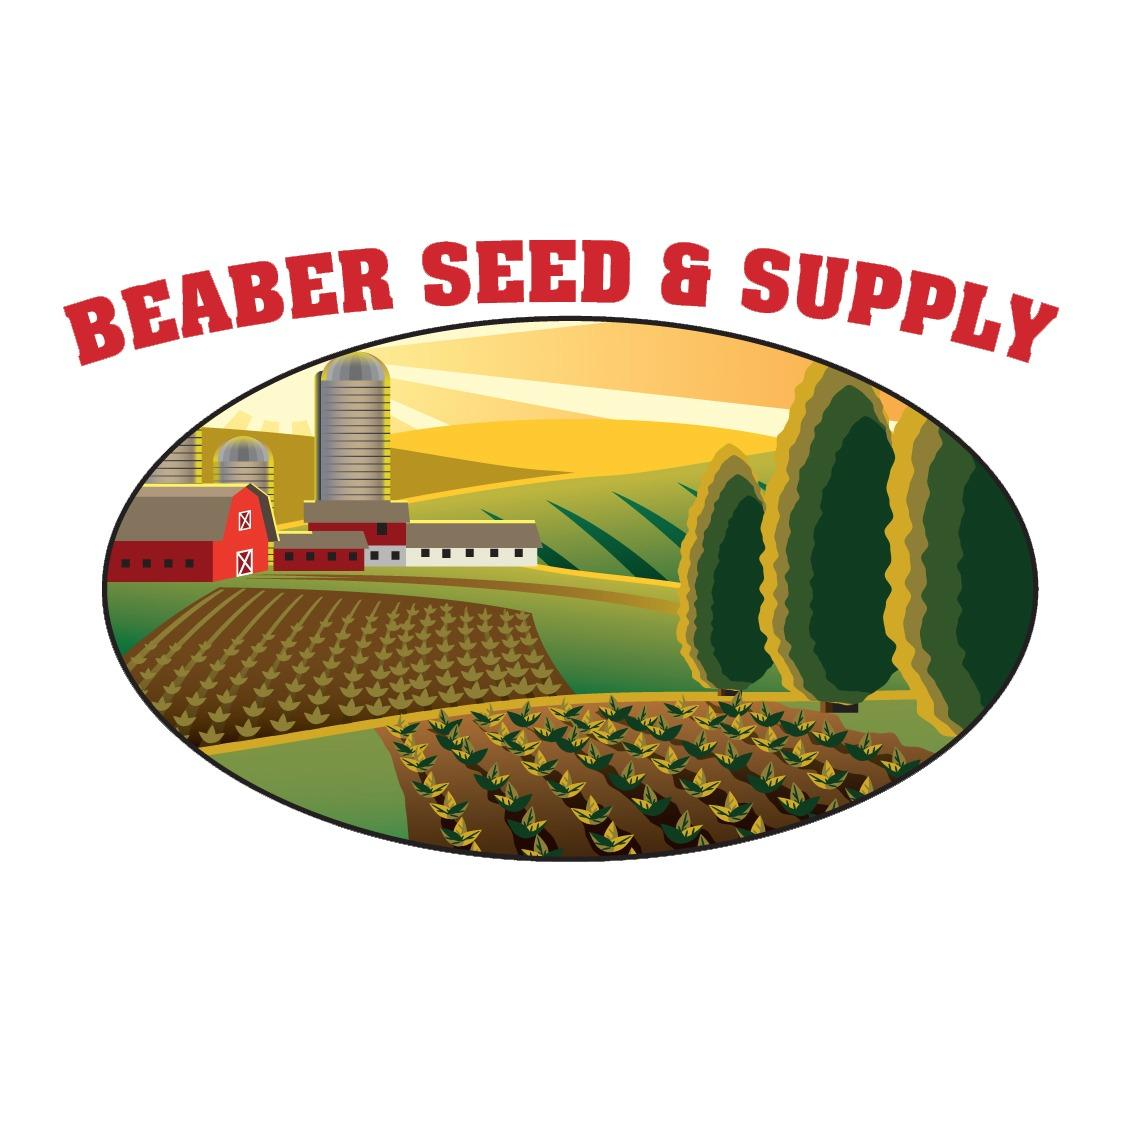 Beaber Seed & Supply